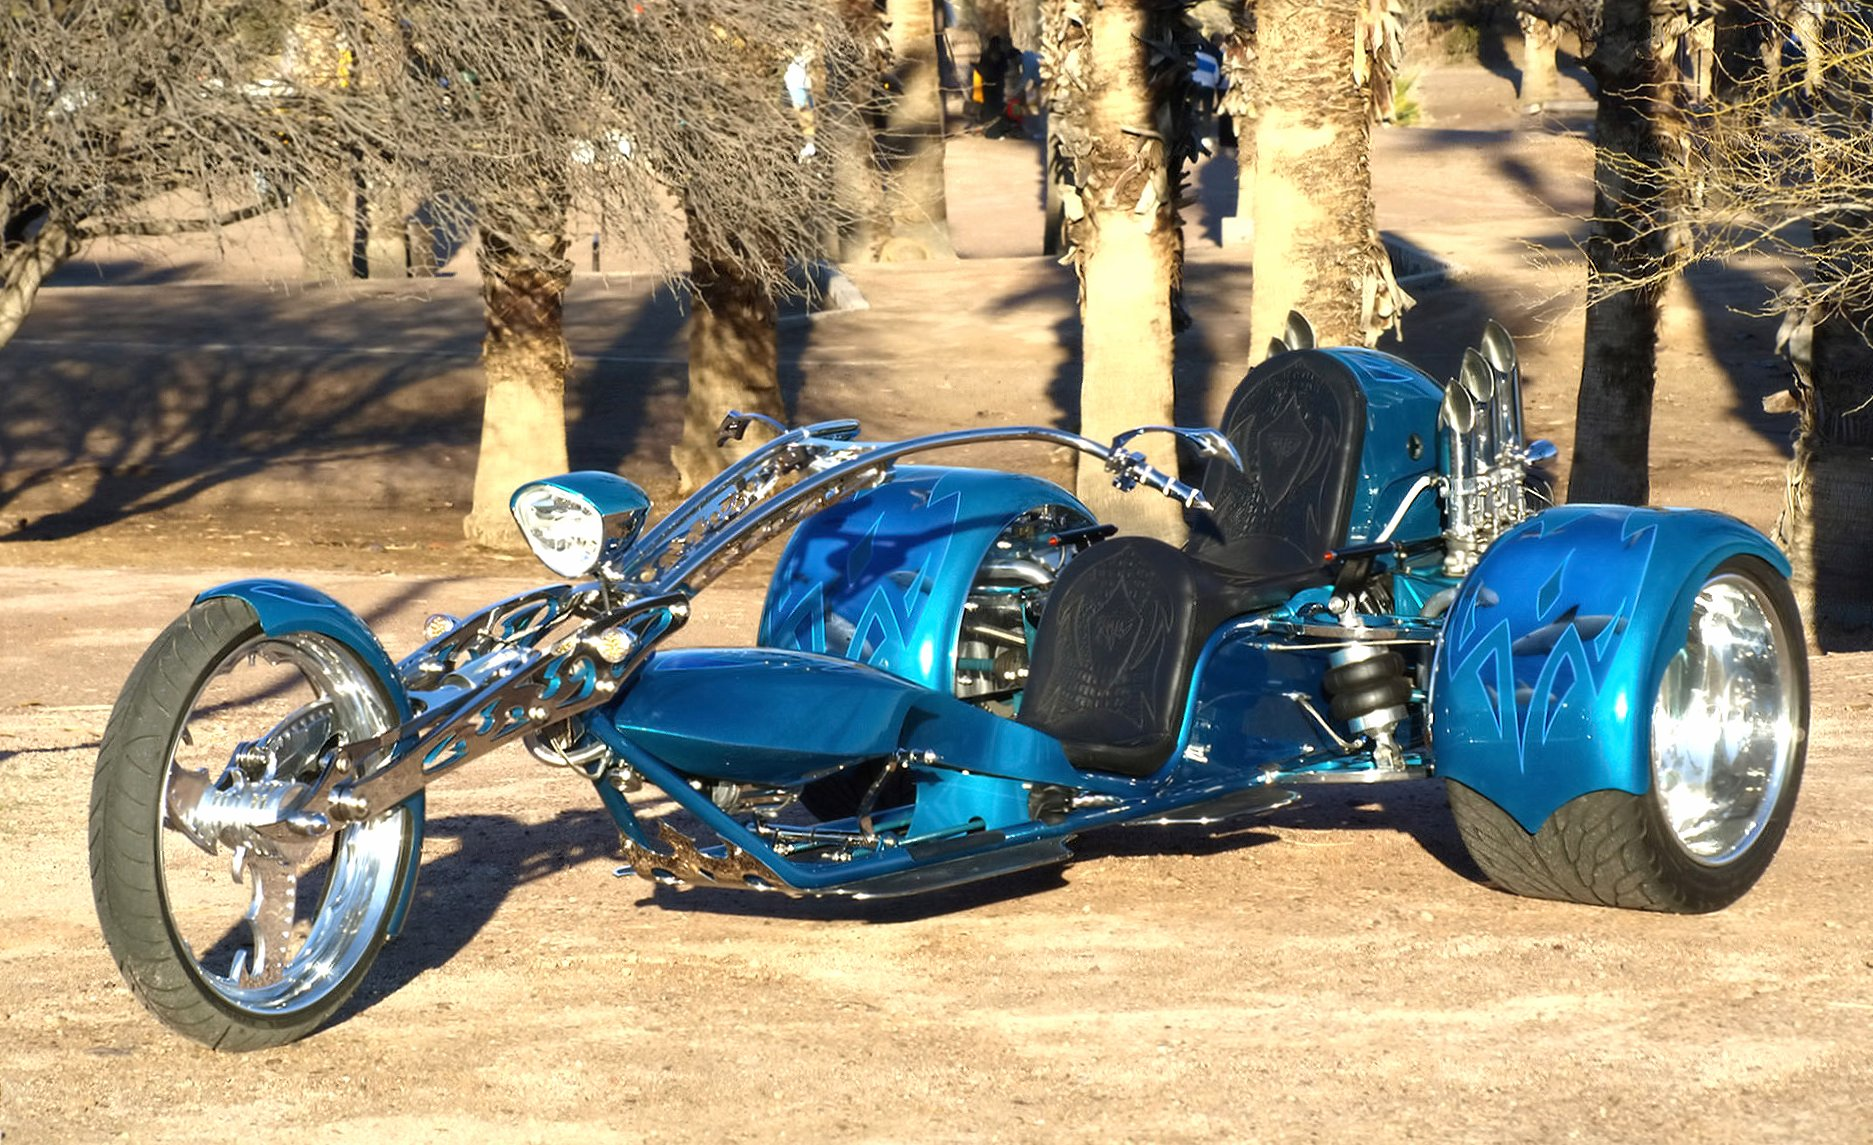 Trike motorbike wallpapers HD quality